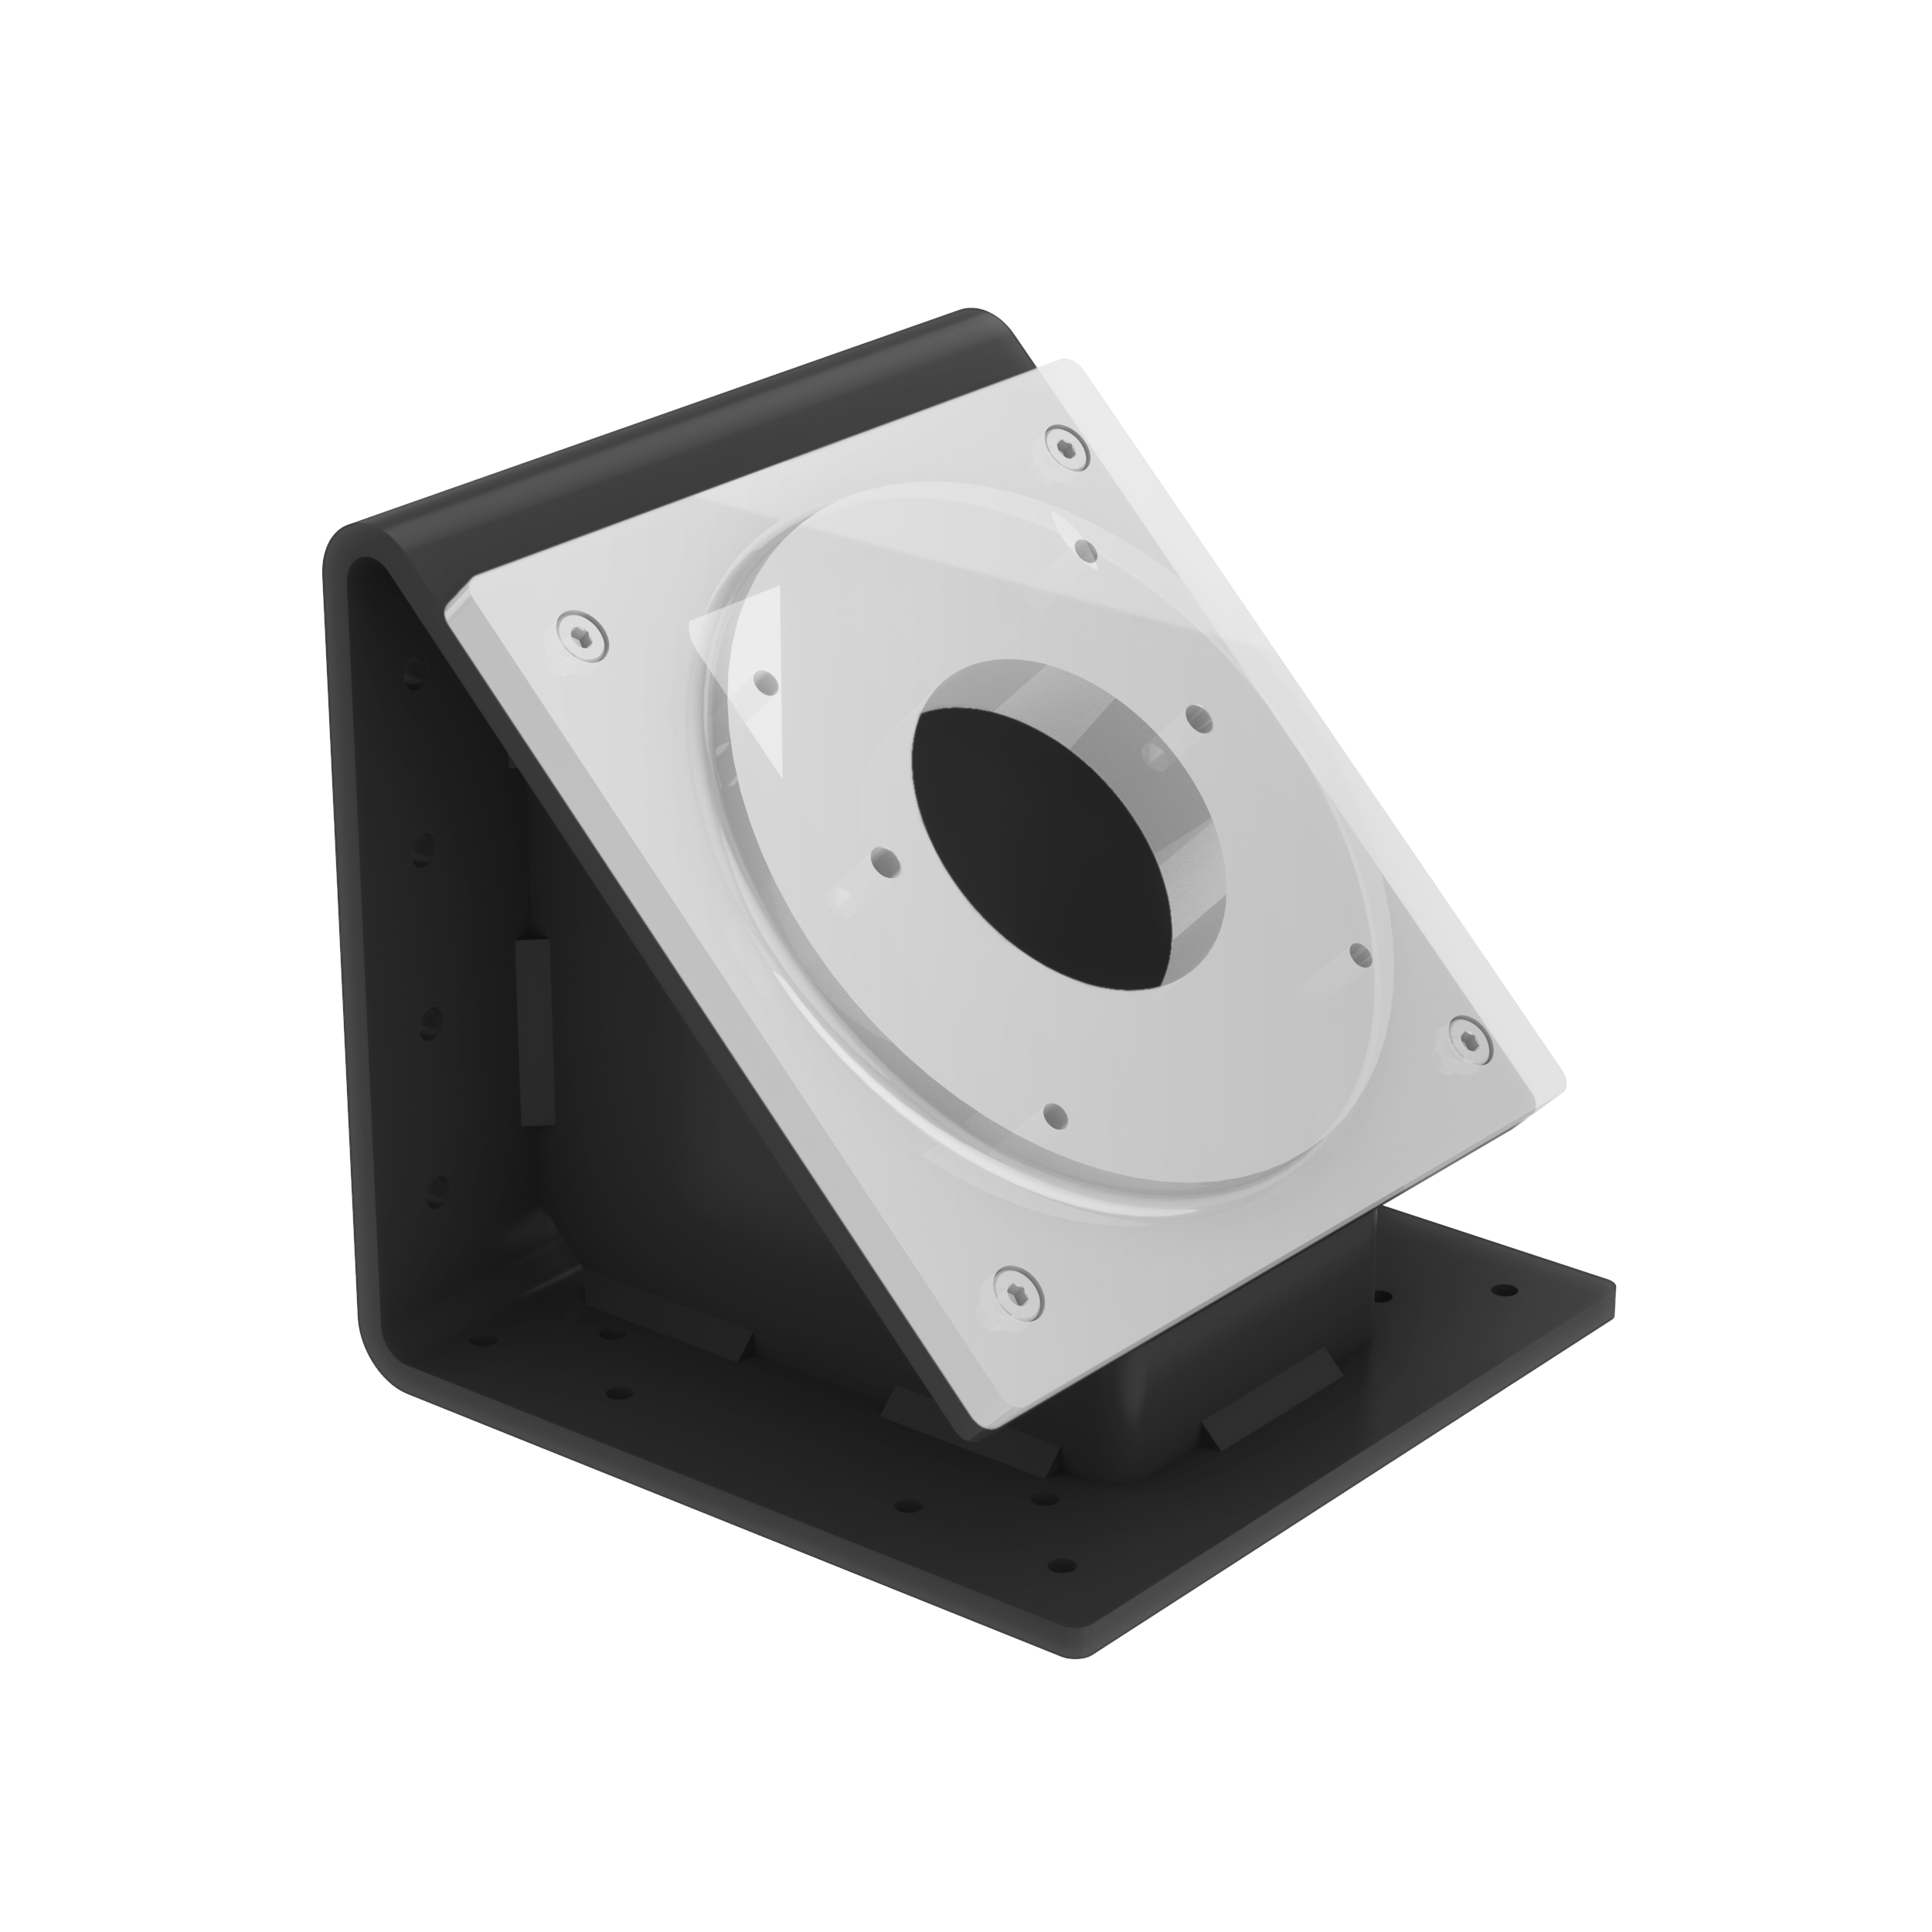 The 45 degree mounting option is shown above.